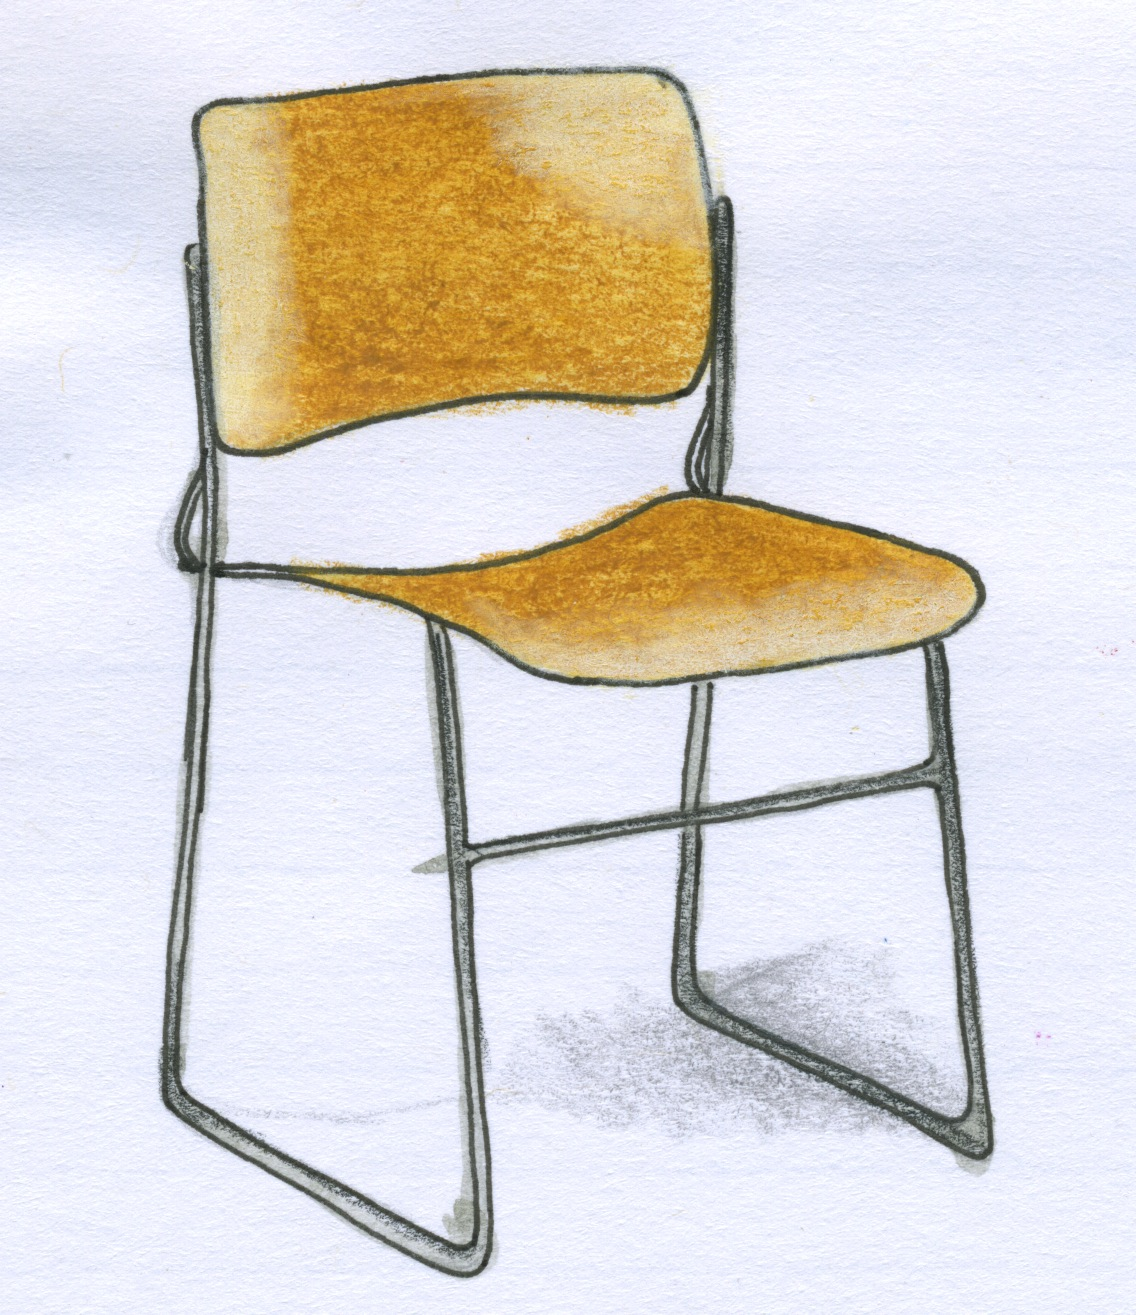 40 4 chair poang cover from ikea 1000 43 images about by david rowland on pinterest